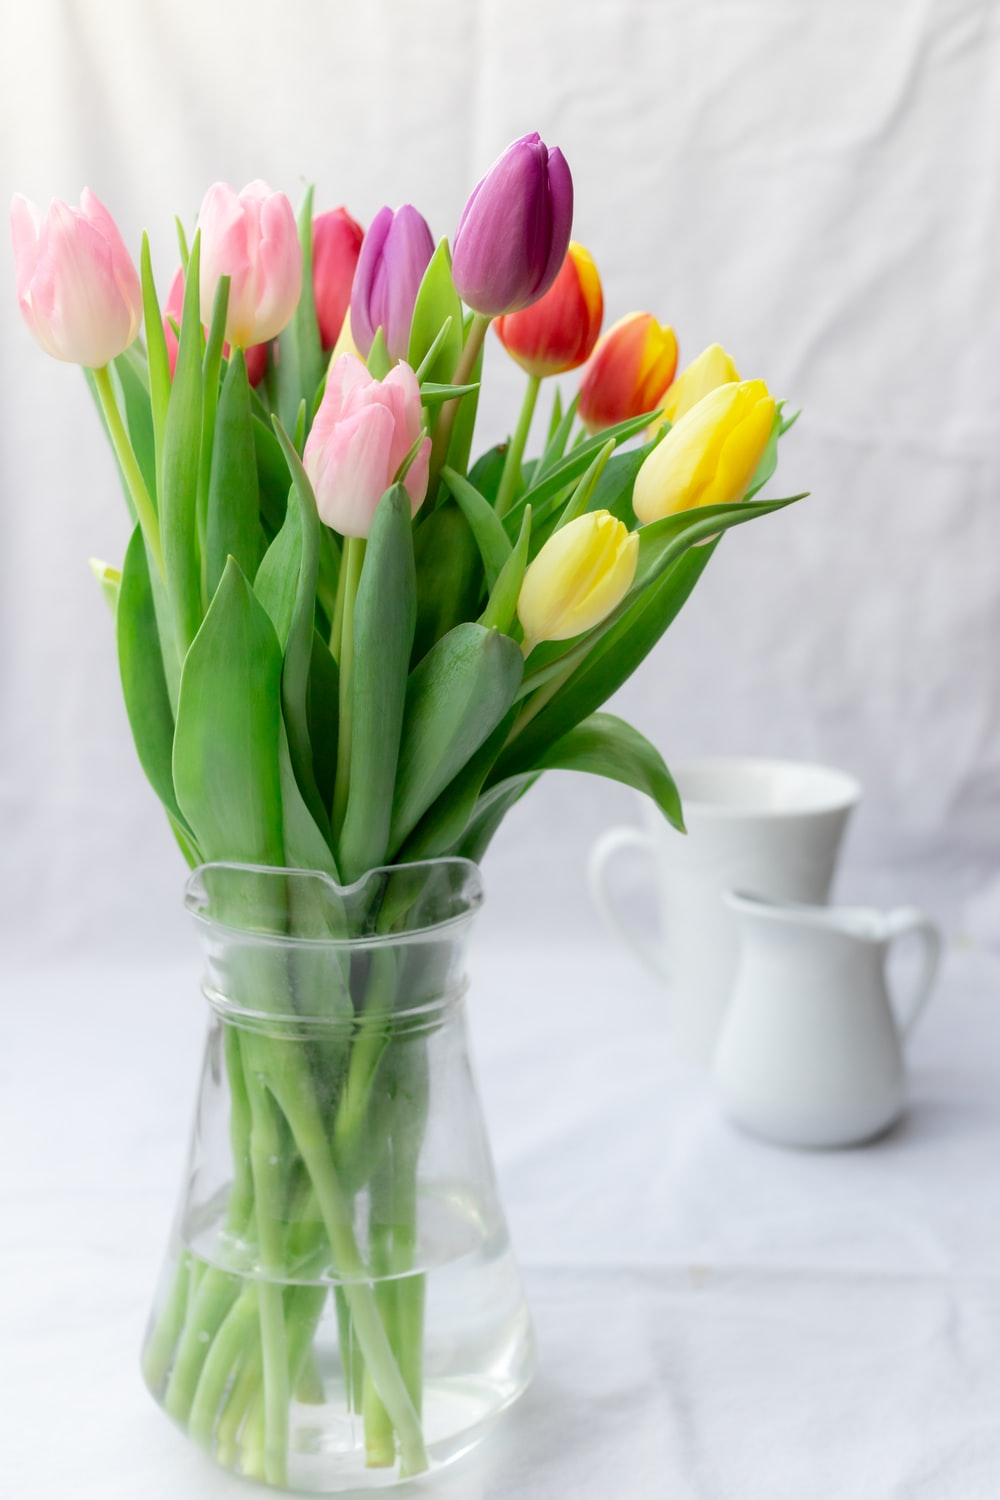 500 Flowers In A Vase Pictures Hd Download Free Images On Unsplash